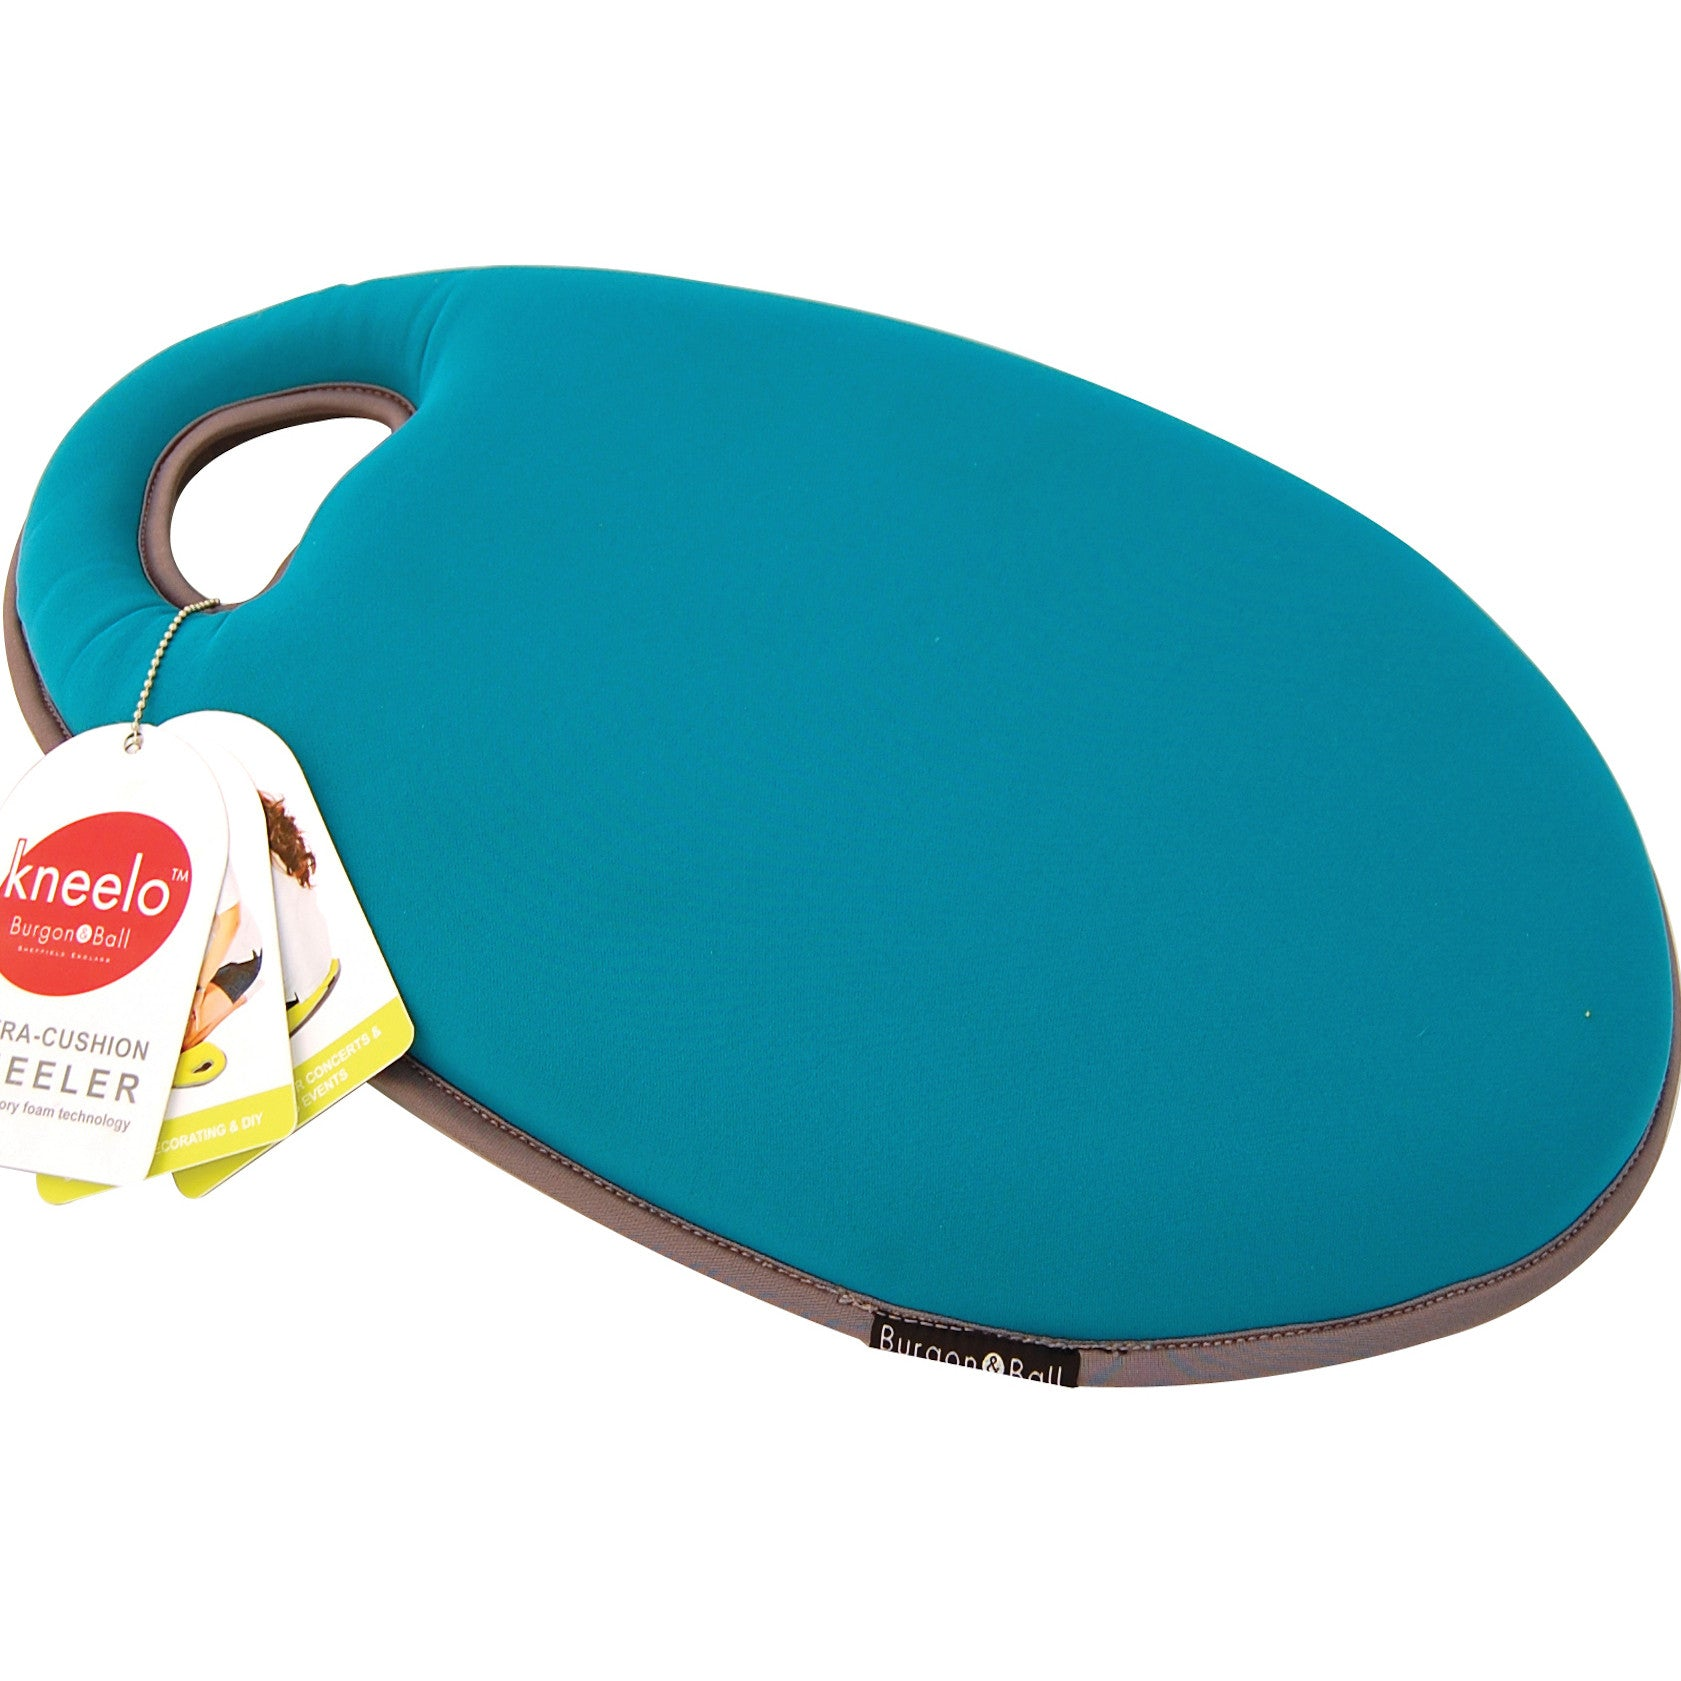 Kneelo® Kneeler - Eucalyptus - The Potting Shed Garden Tools